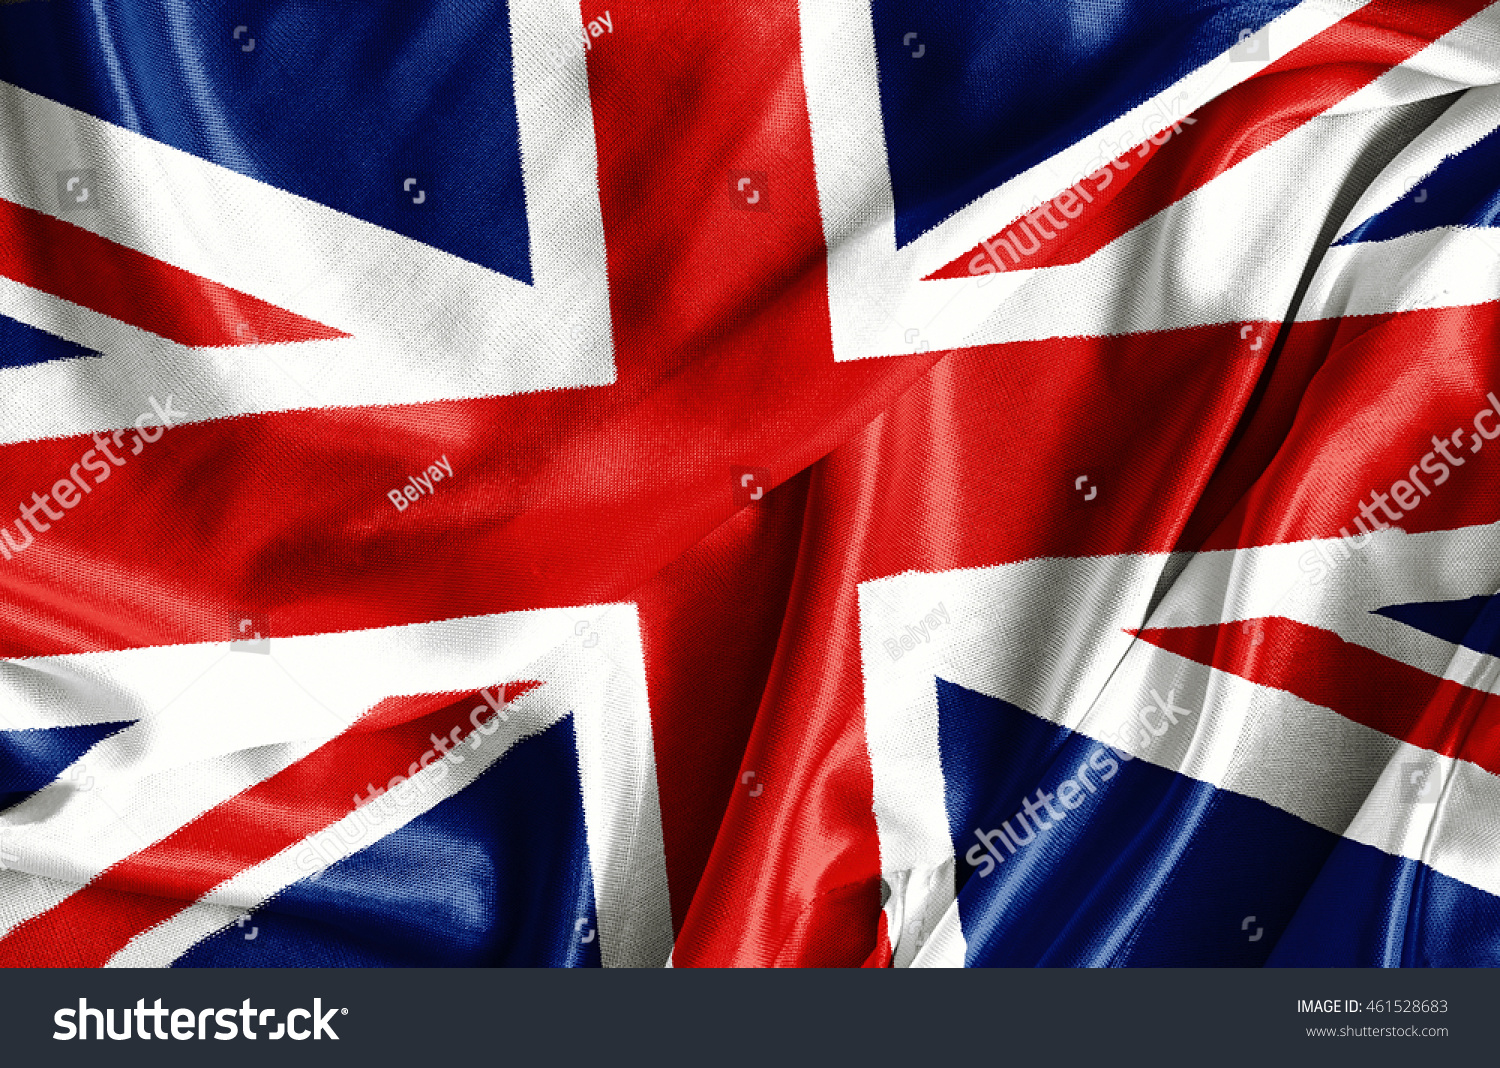 Closeup of ruffled British flag - fabric background #461528683